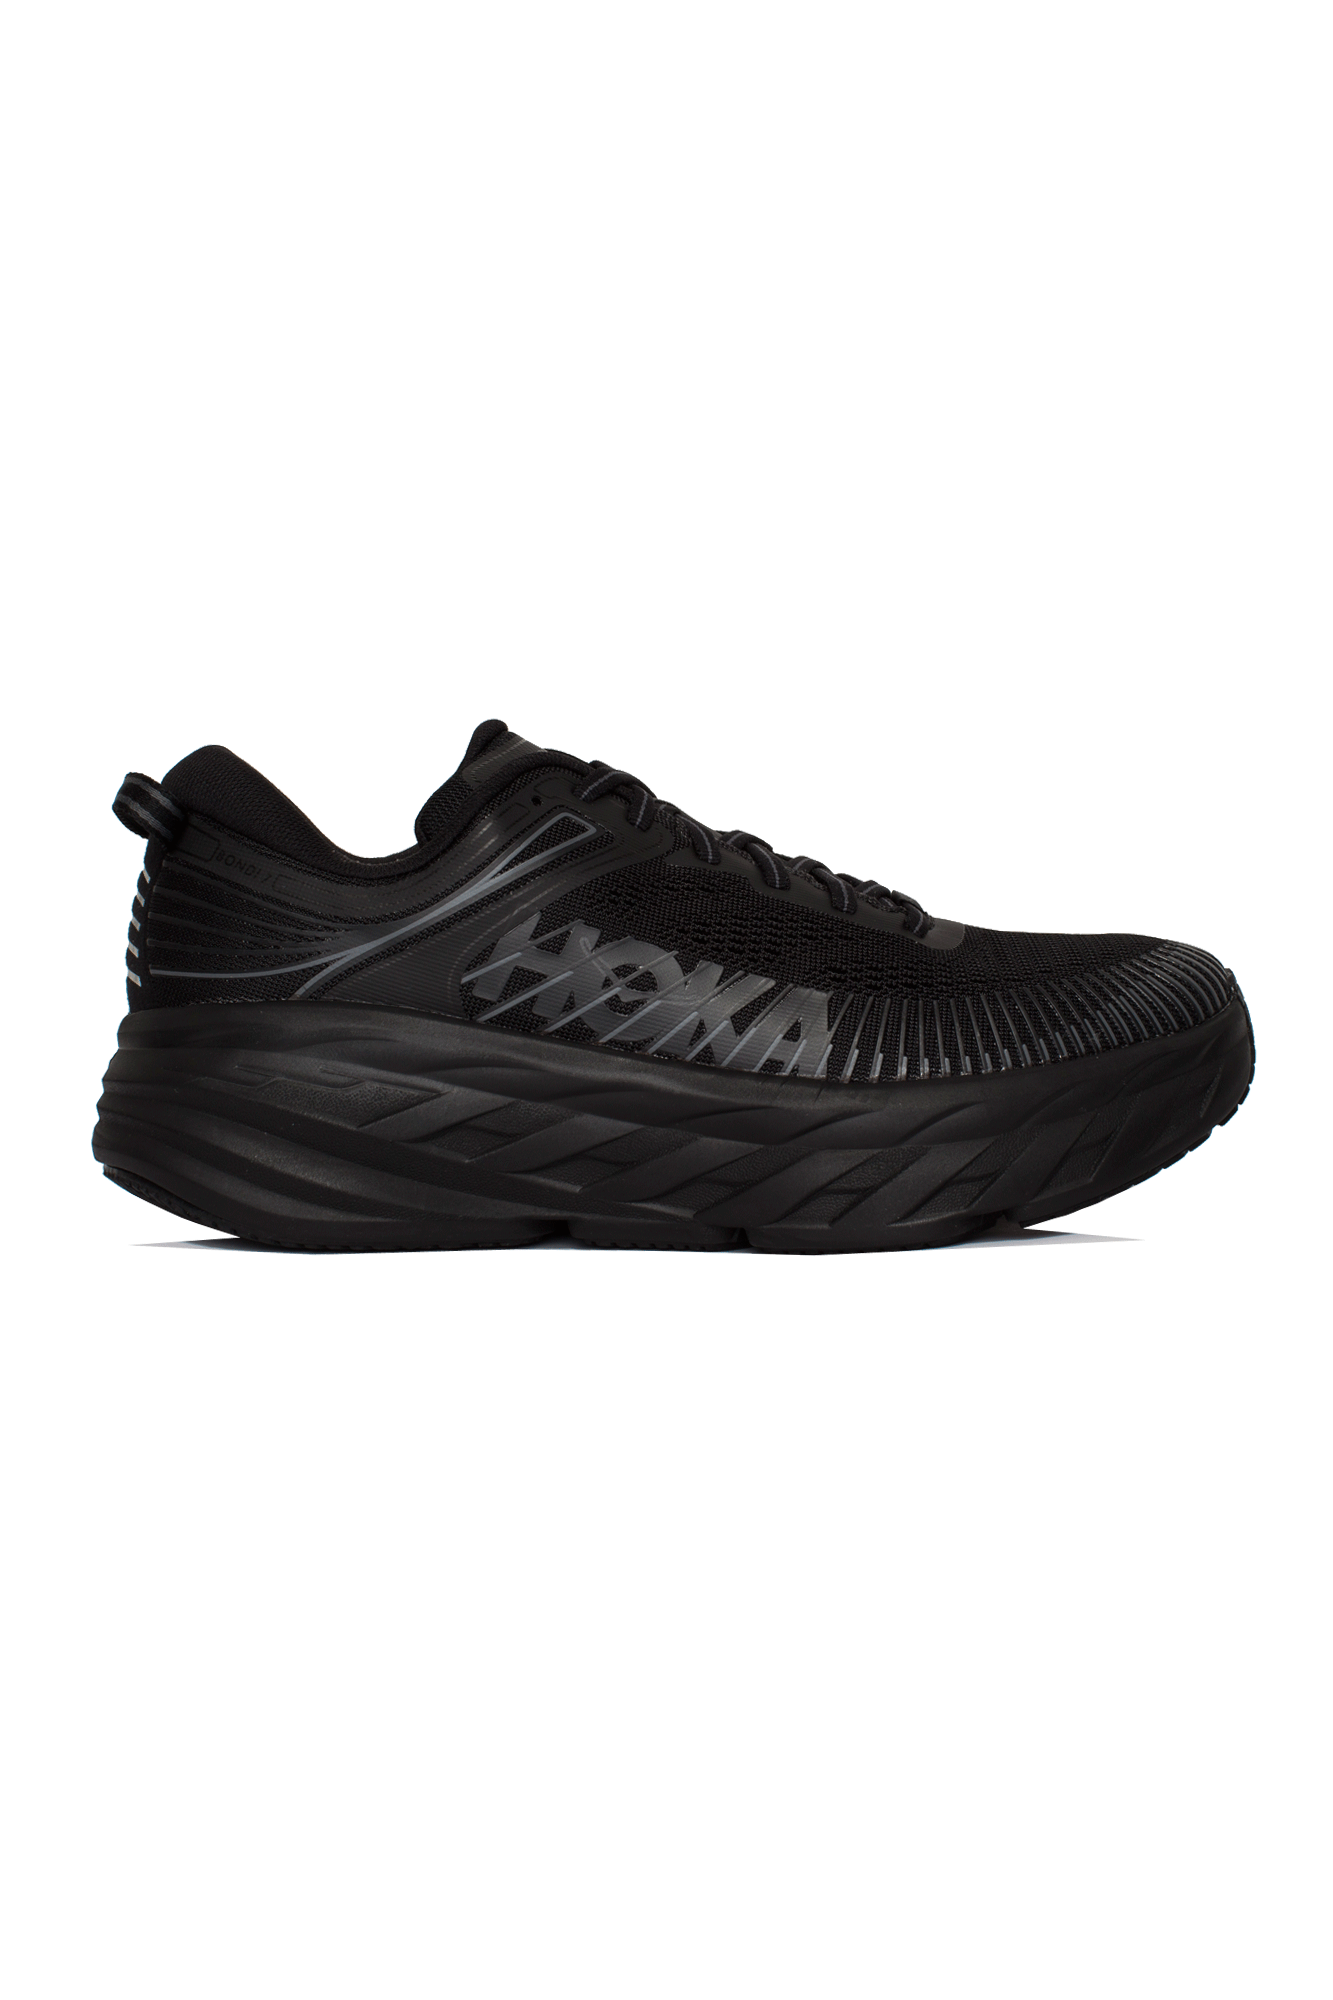 Hoka One One Sneakers W Bondi 7 Black HK.1110519#000#BBLC#6 - One Block Down